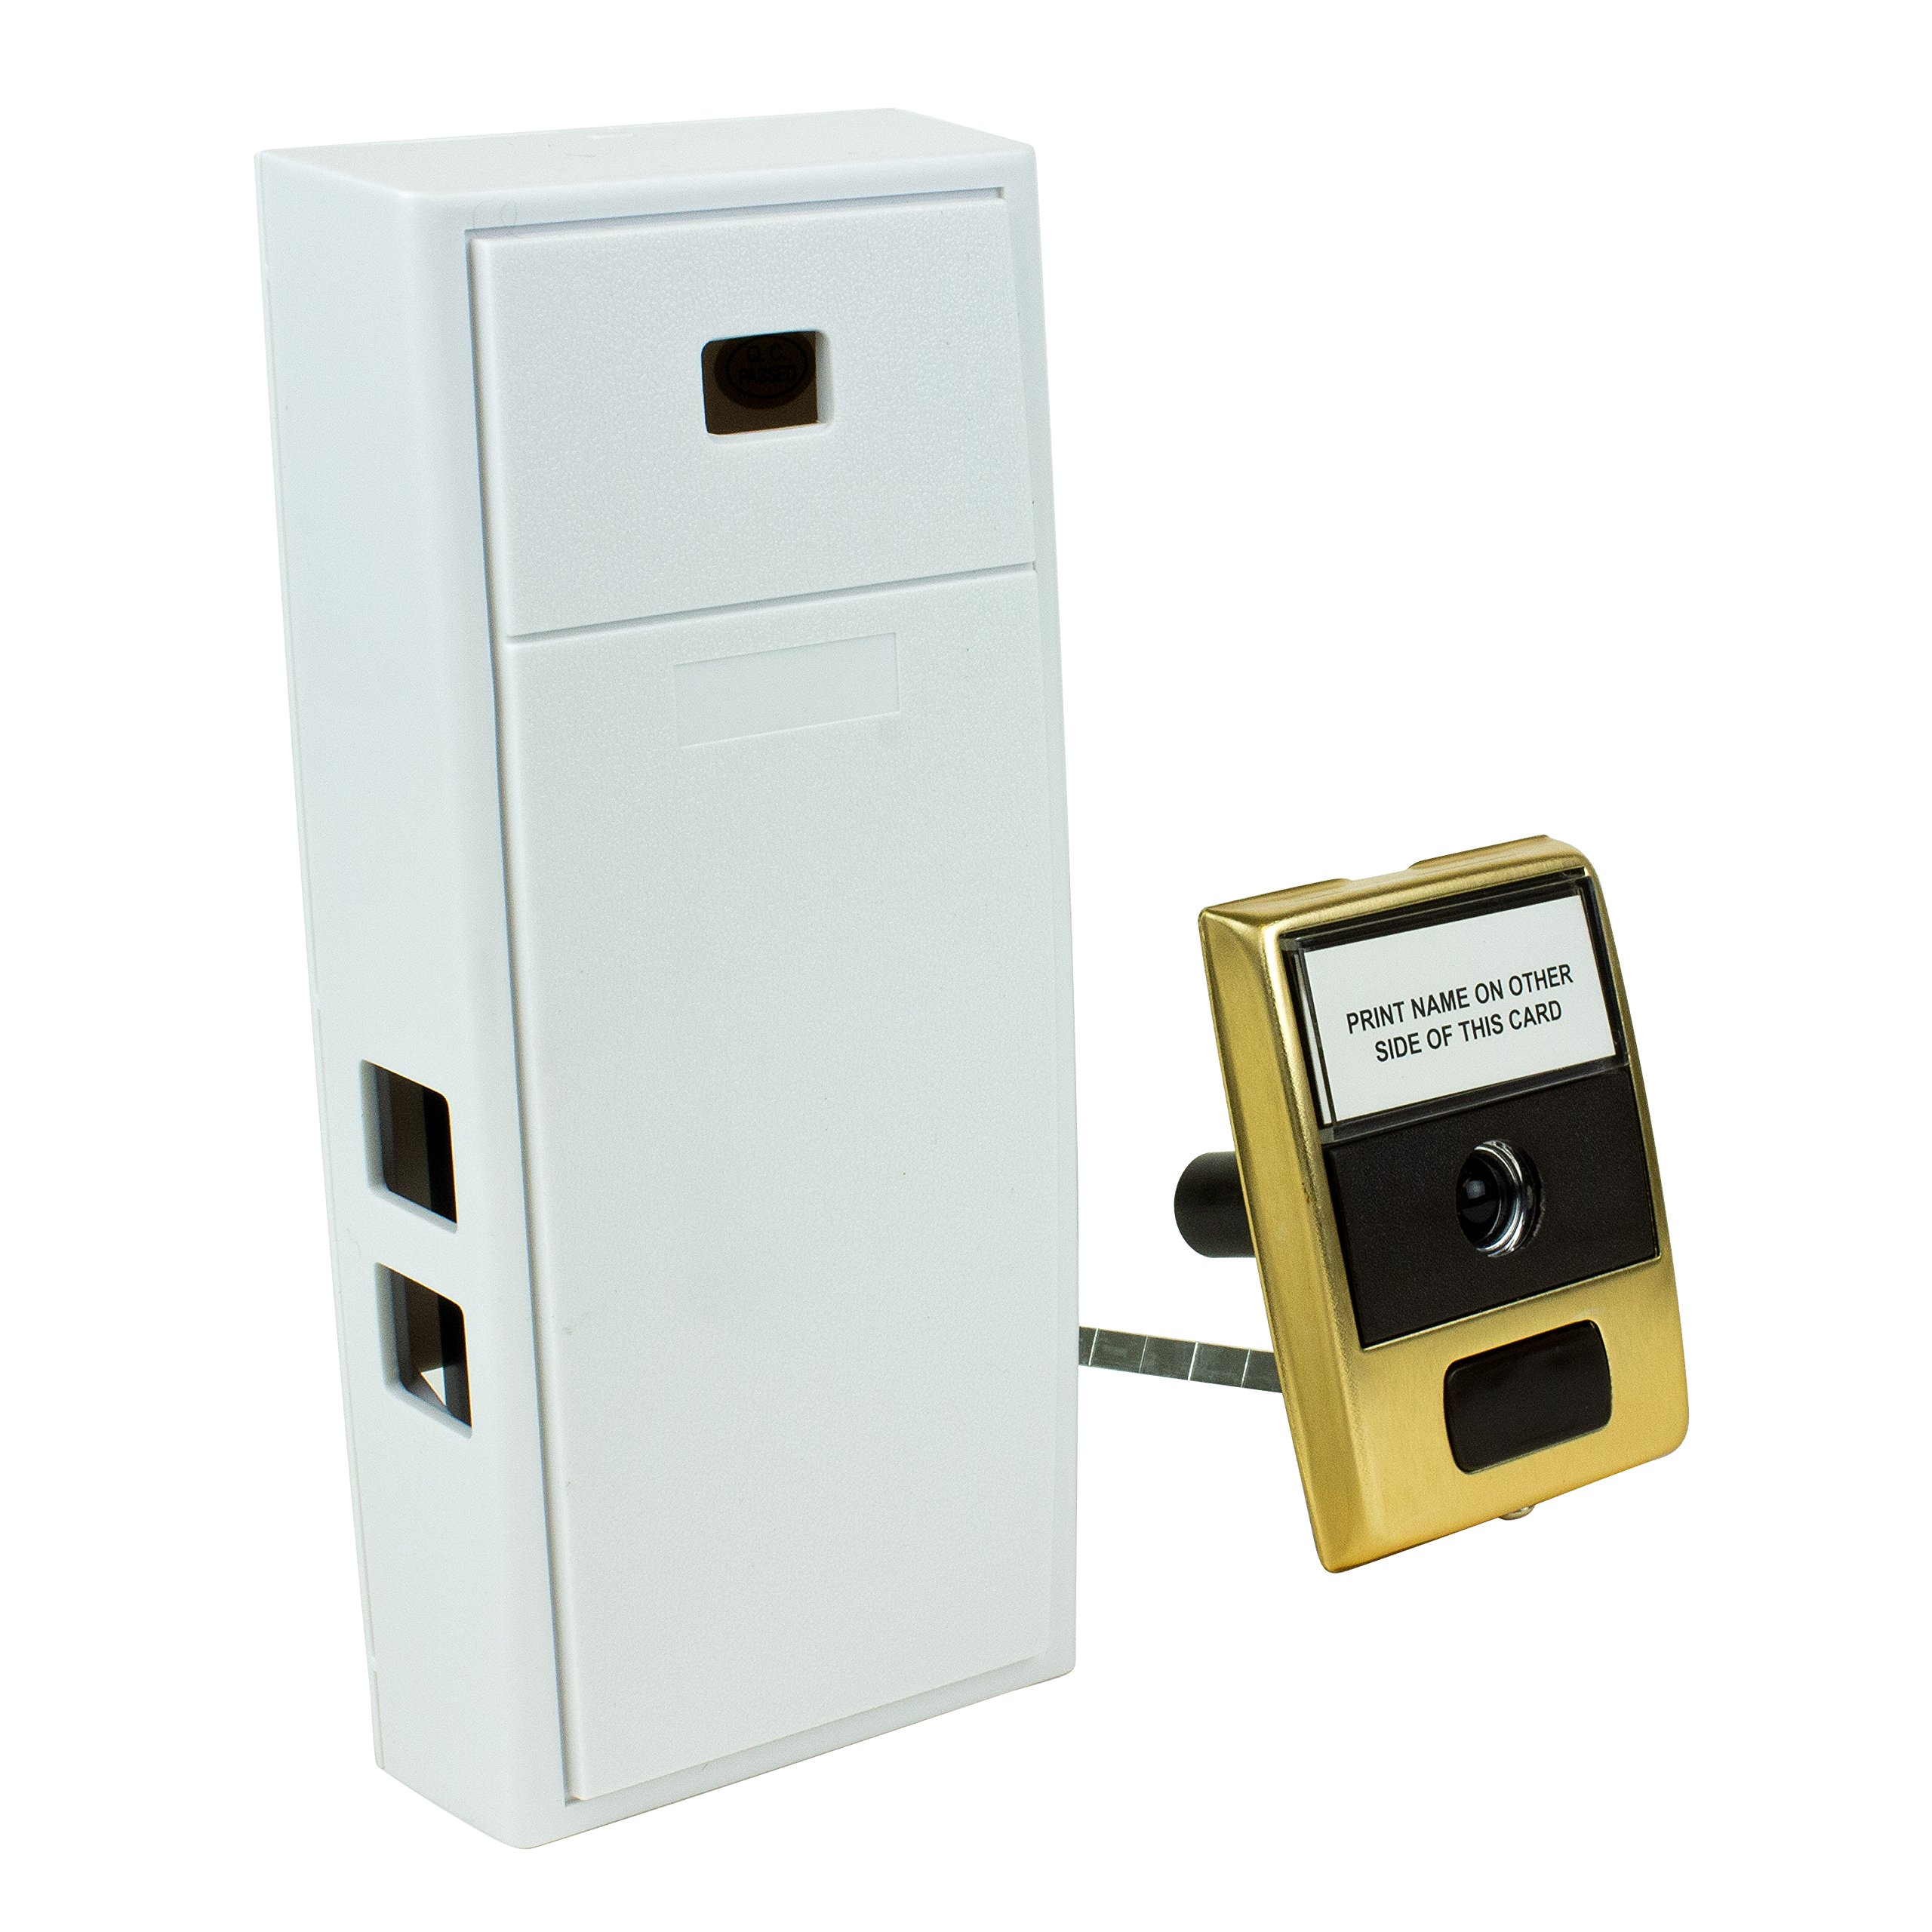 Newhouse Hardware MCHBV Door Chime, One Size, Ivory